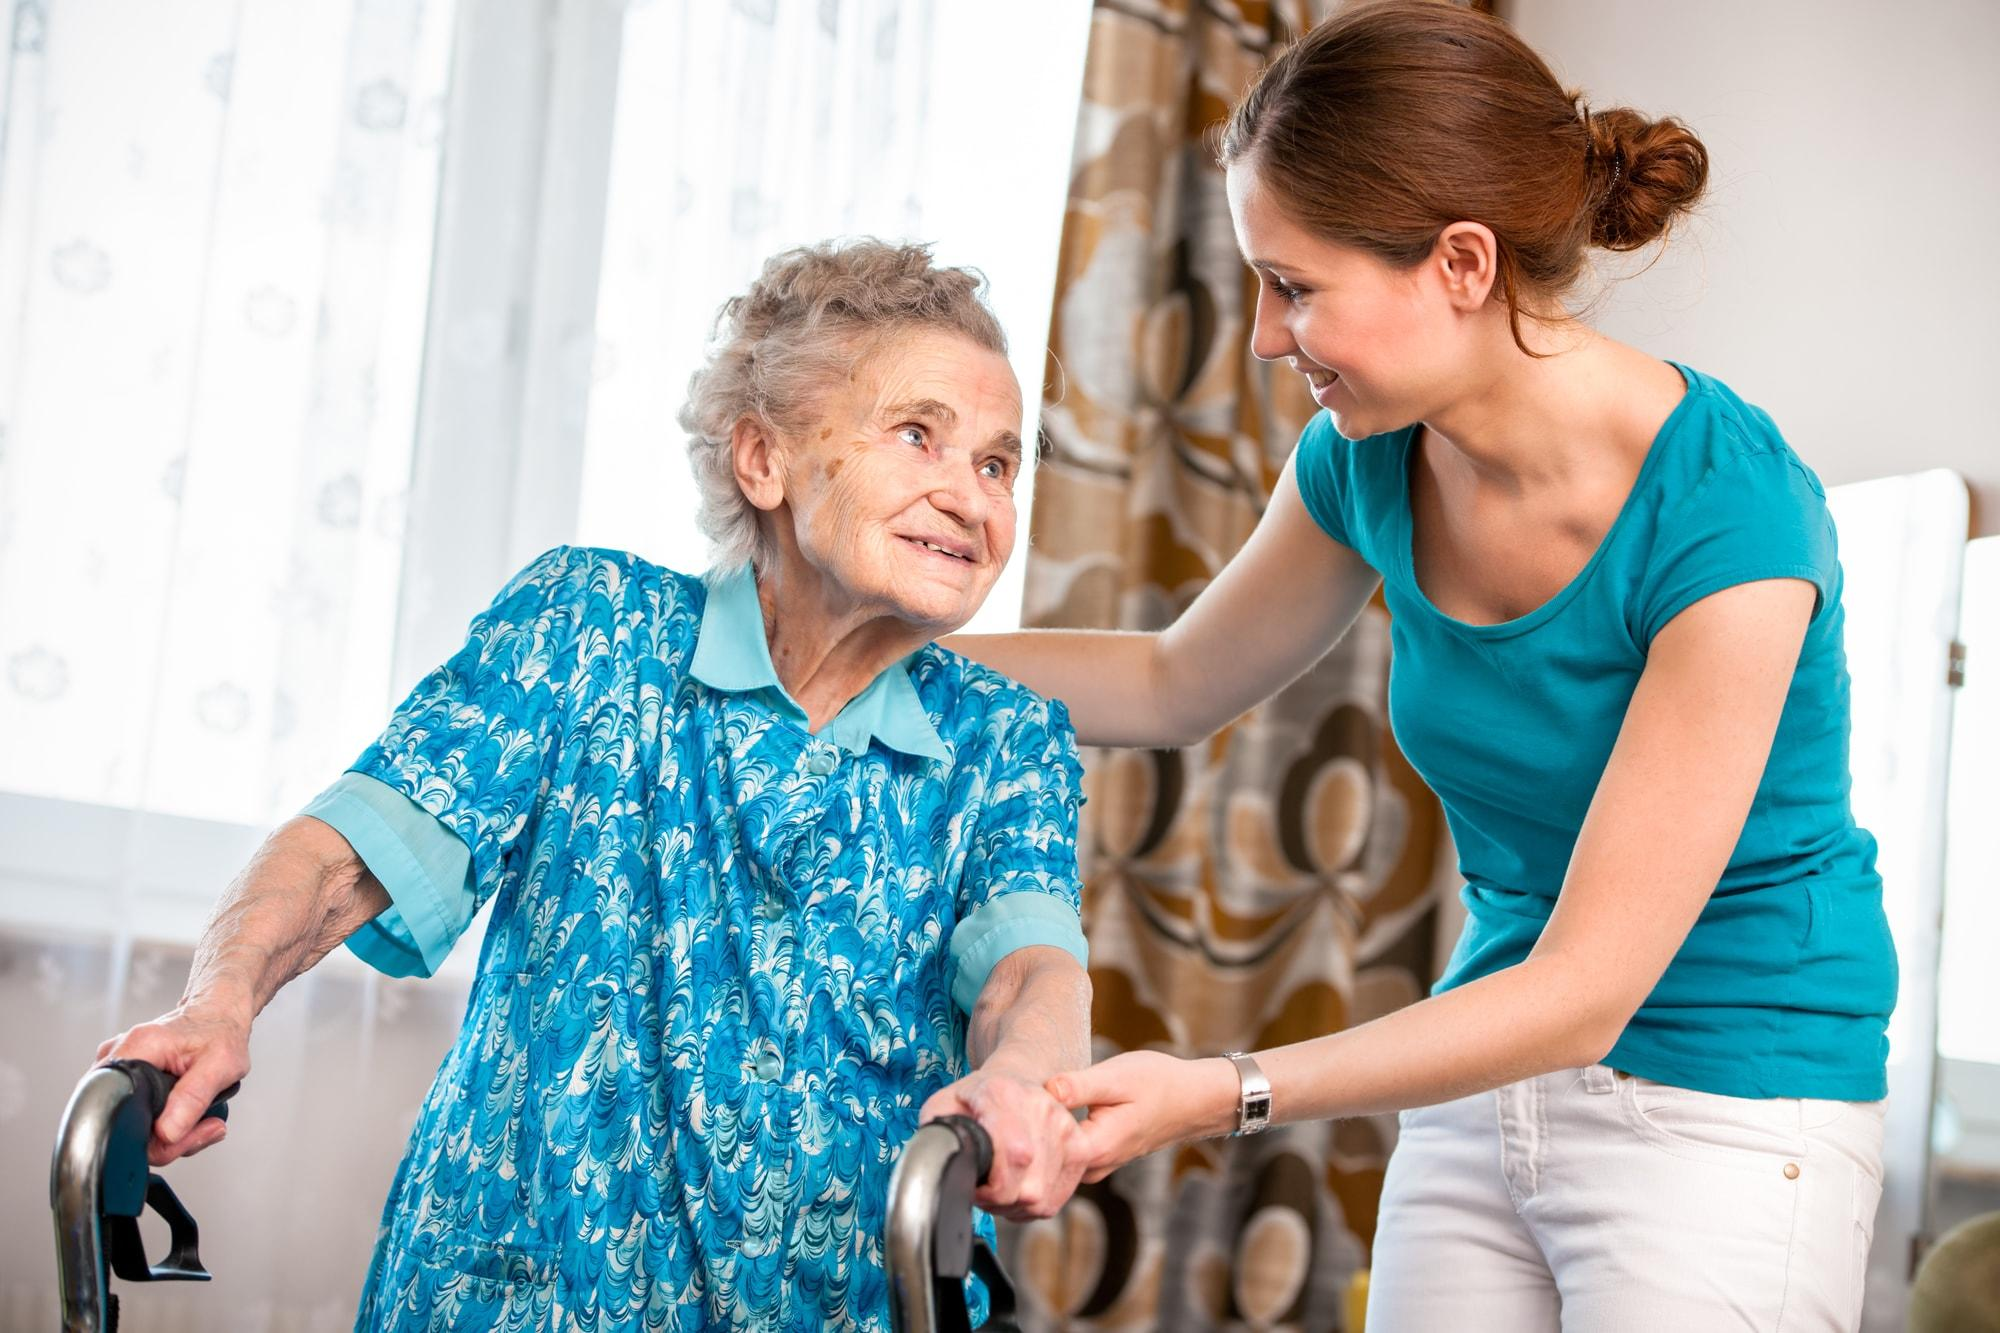 Cna classes only 75 to start your path to a new career becoming a cna gives you the ability to take care of loved ones better 1betcityfo Image collections